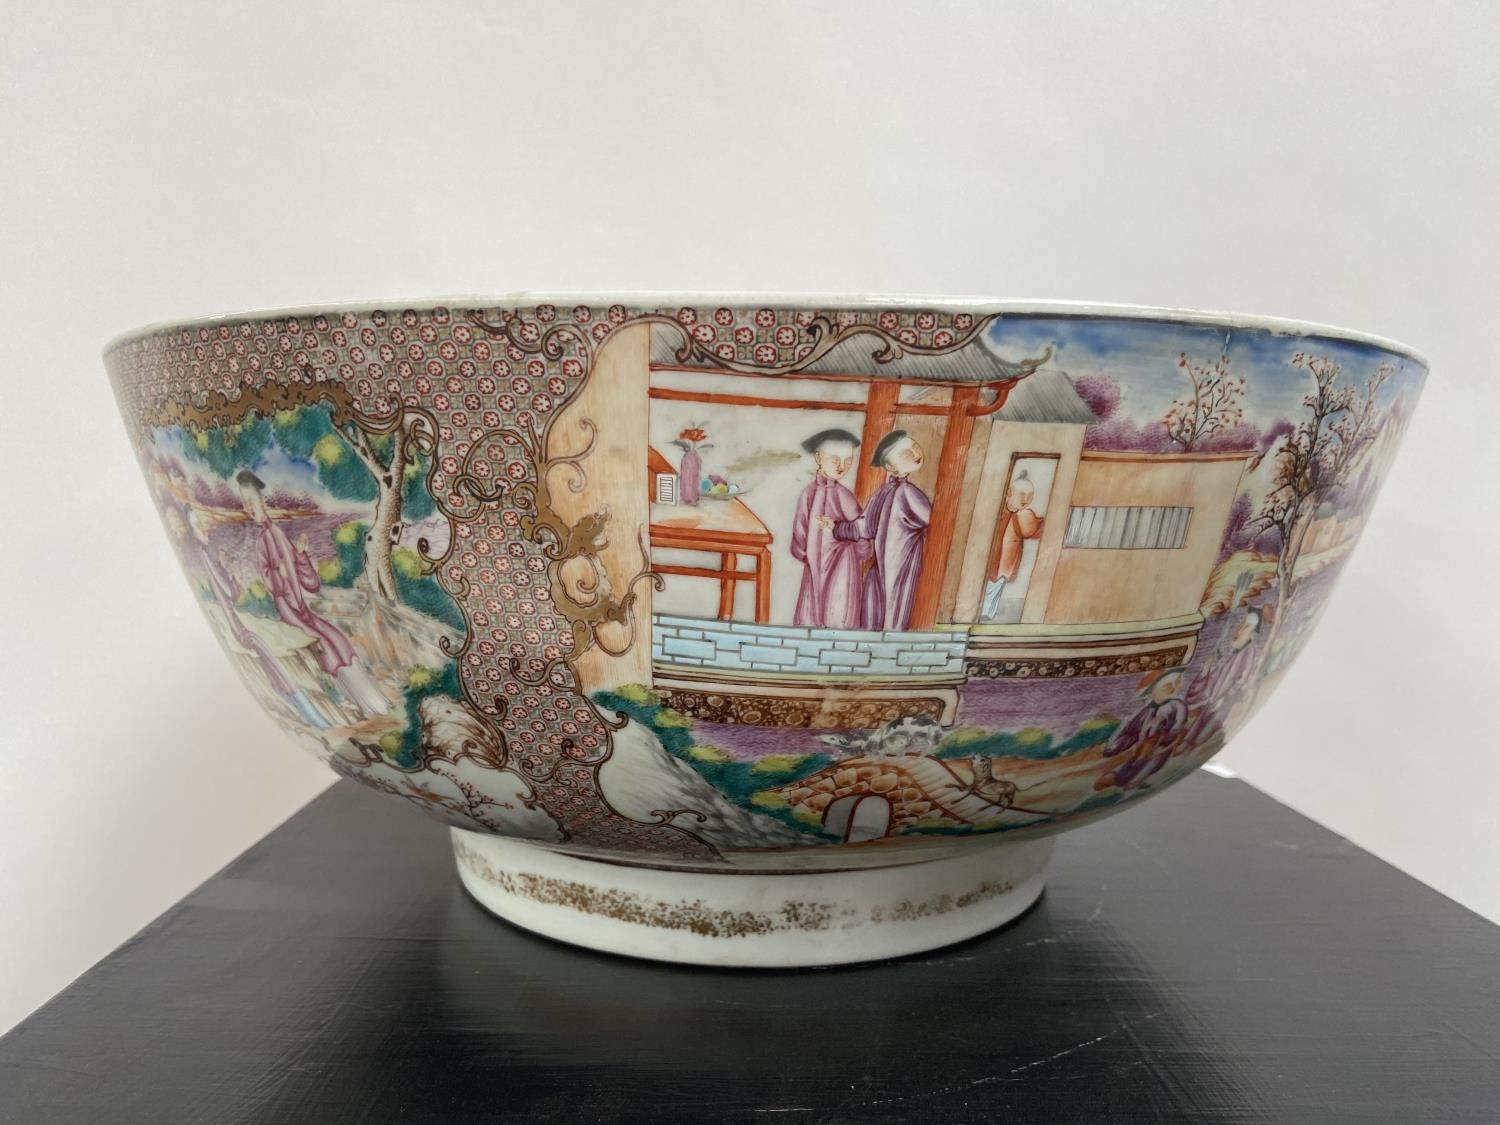 A LARGE 19TH CENTURY CHINESE HAND PAINTED BOWL. EXTERIOR DEPICTS CHINESE HUNTING SCENE PANELS. THE - Image 25 of 39